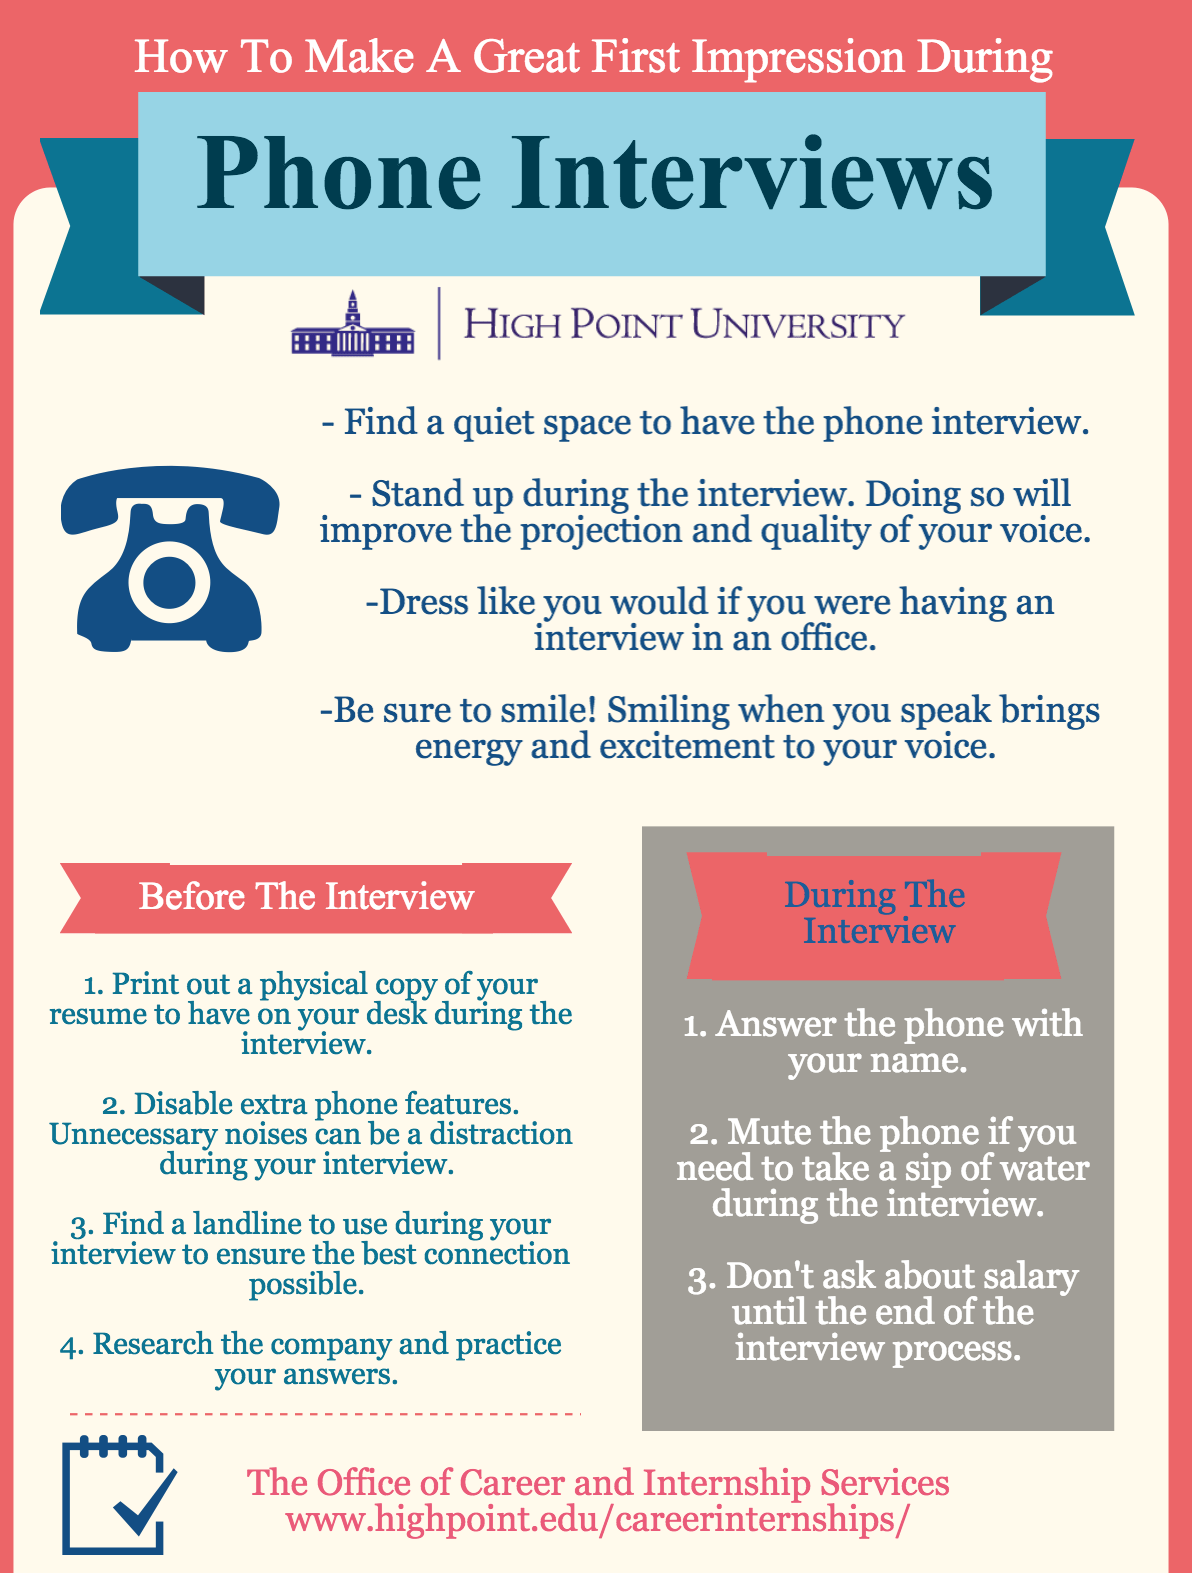 Infographic Great Impressions During Phone Interviews